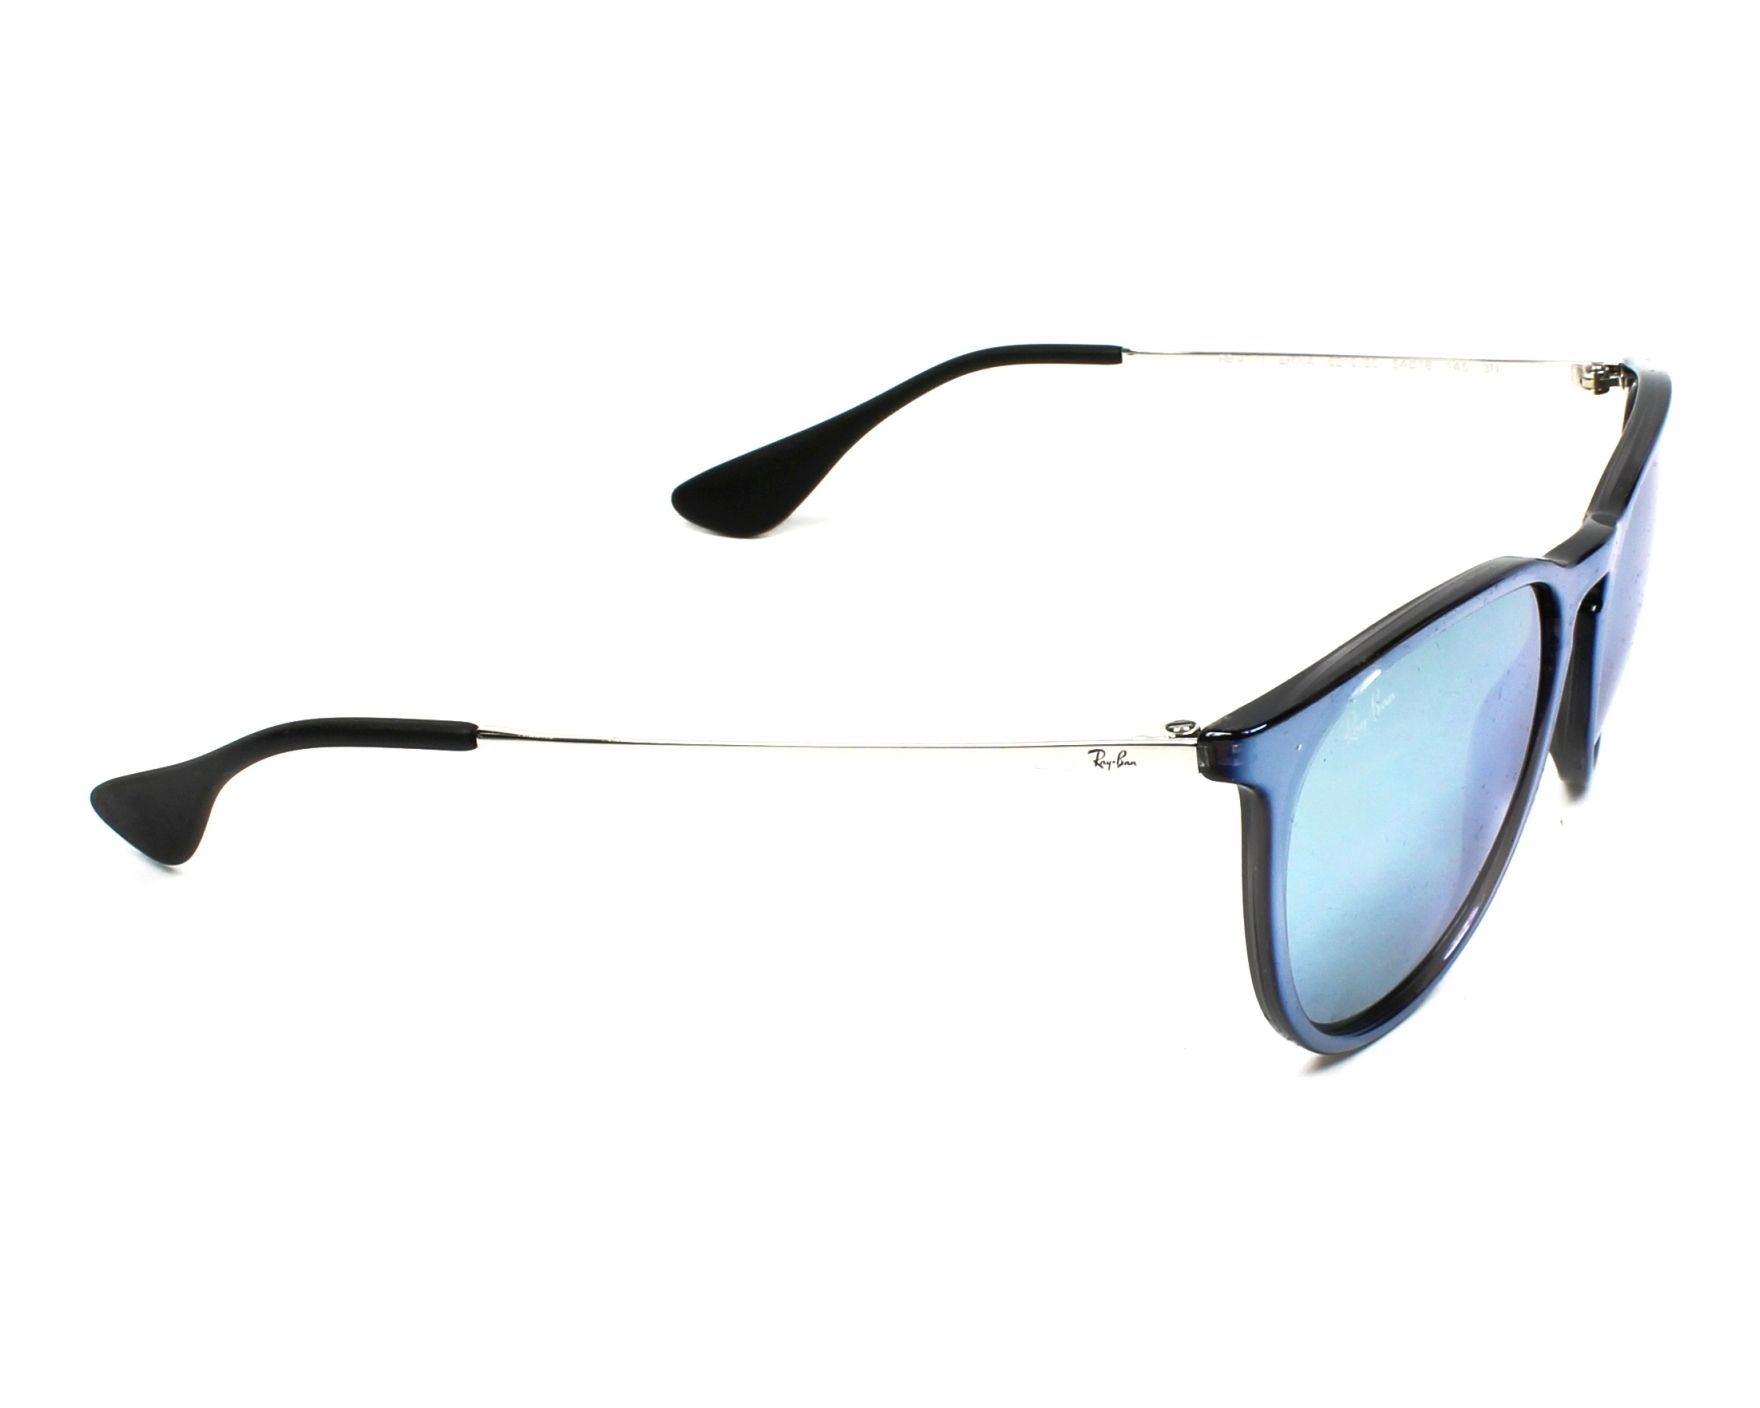 afb23e02e7d Sunglasses Ray-Ban RB-4171 631930 54-17 Blue Silver side view